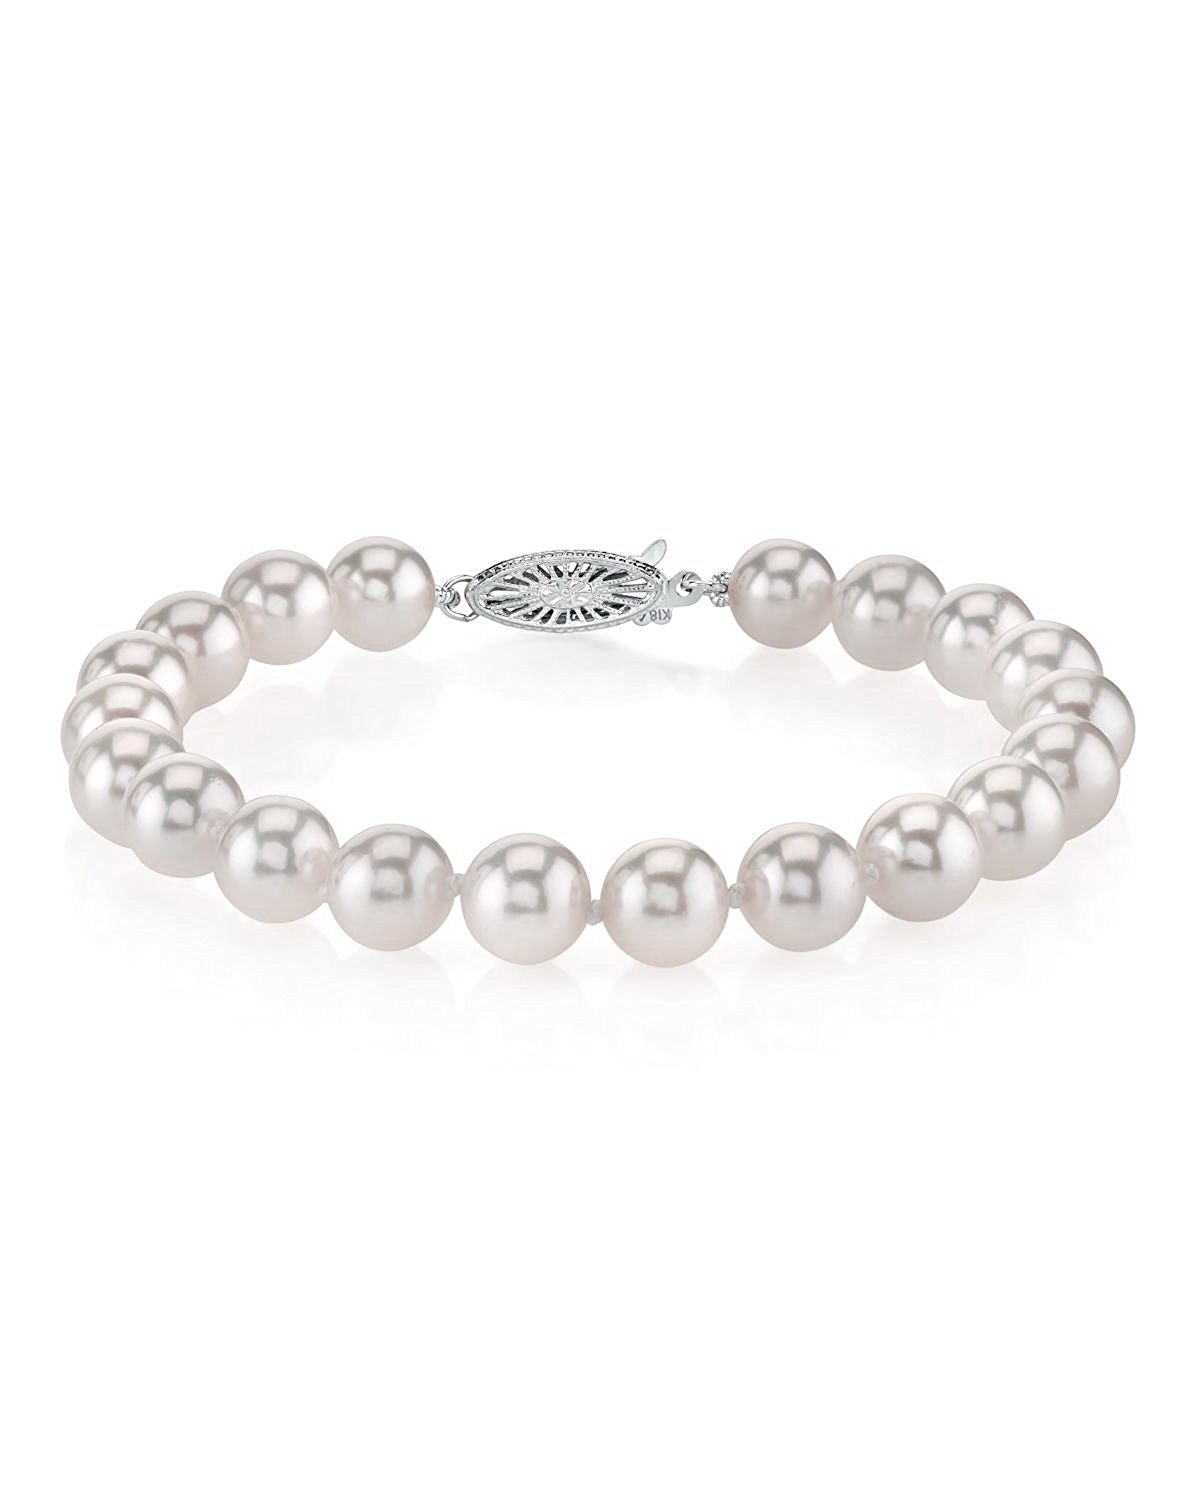 The Pearl Source 18K Gold 6.5-7.0mm Japanese Akoya Saltwater White Cultured Pearl Bracelet